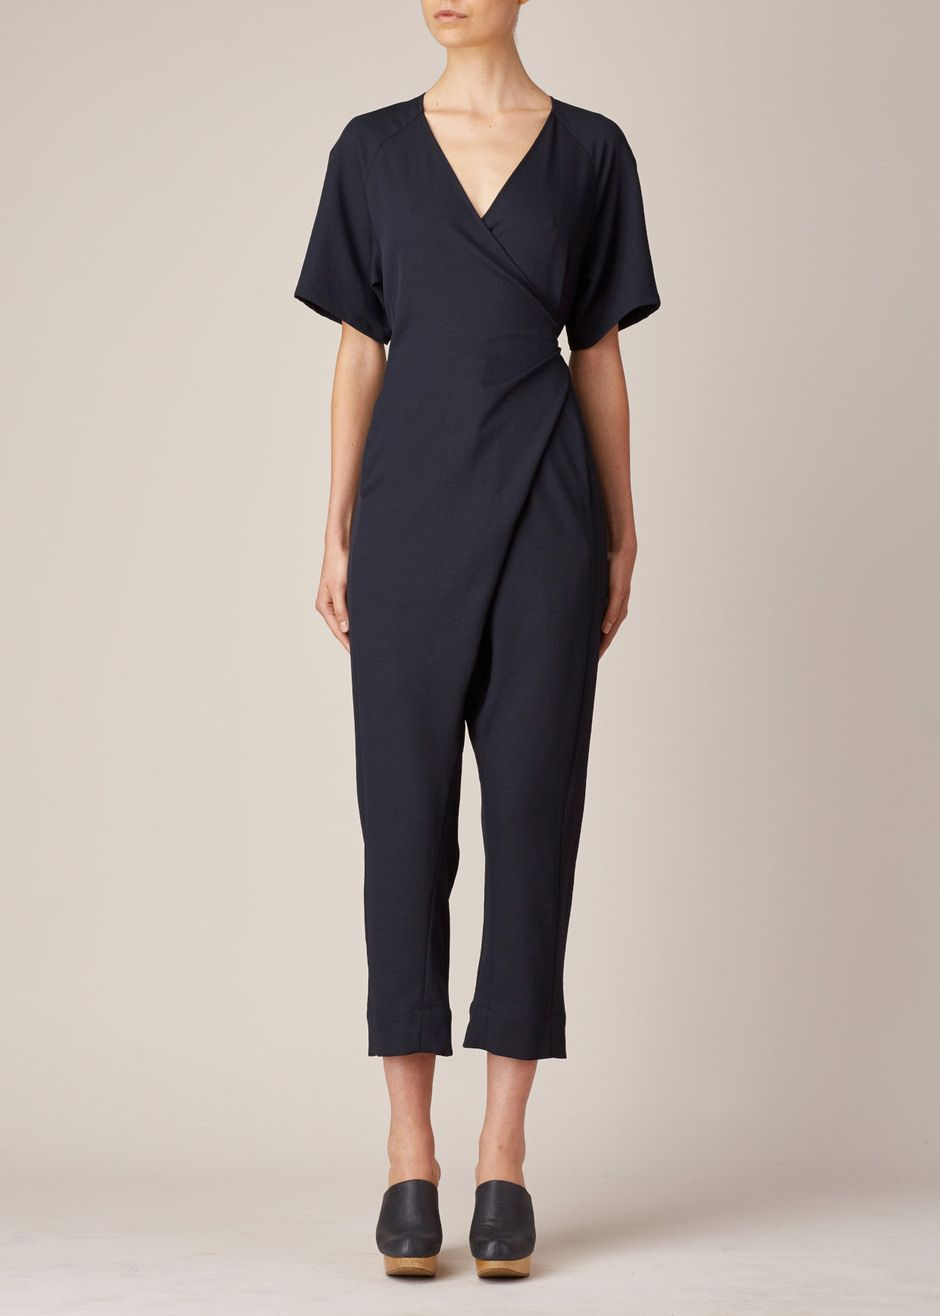 Rachel comey dispatch jumpsuit my guilty pleasureothing